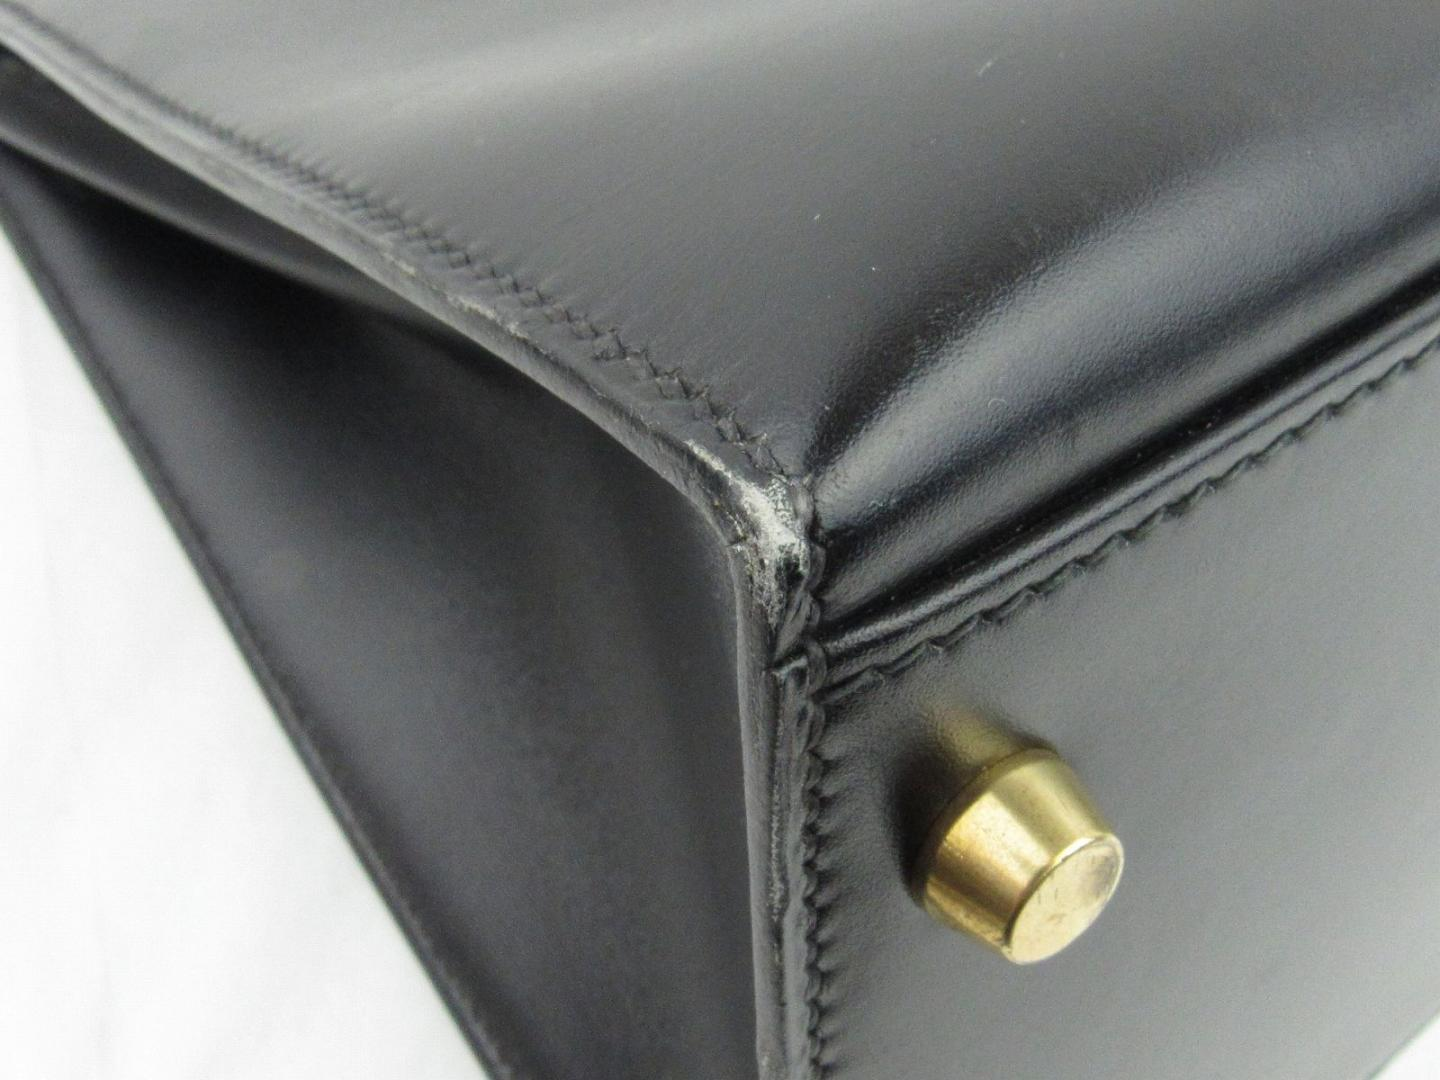 87a50c47b0d Authentic HERMES Kelly 35 outside stitched hand Bag Box calf leather Black  GHW